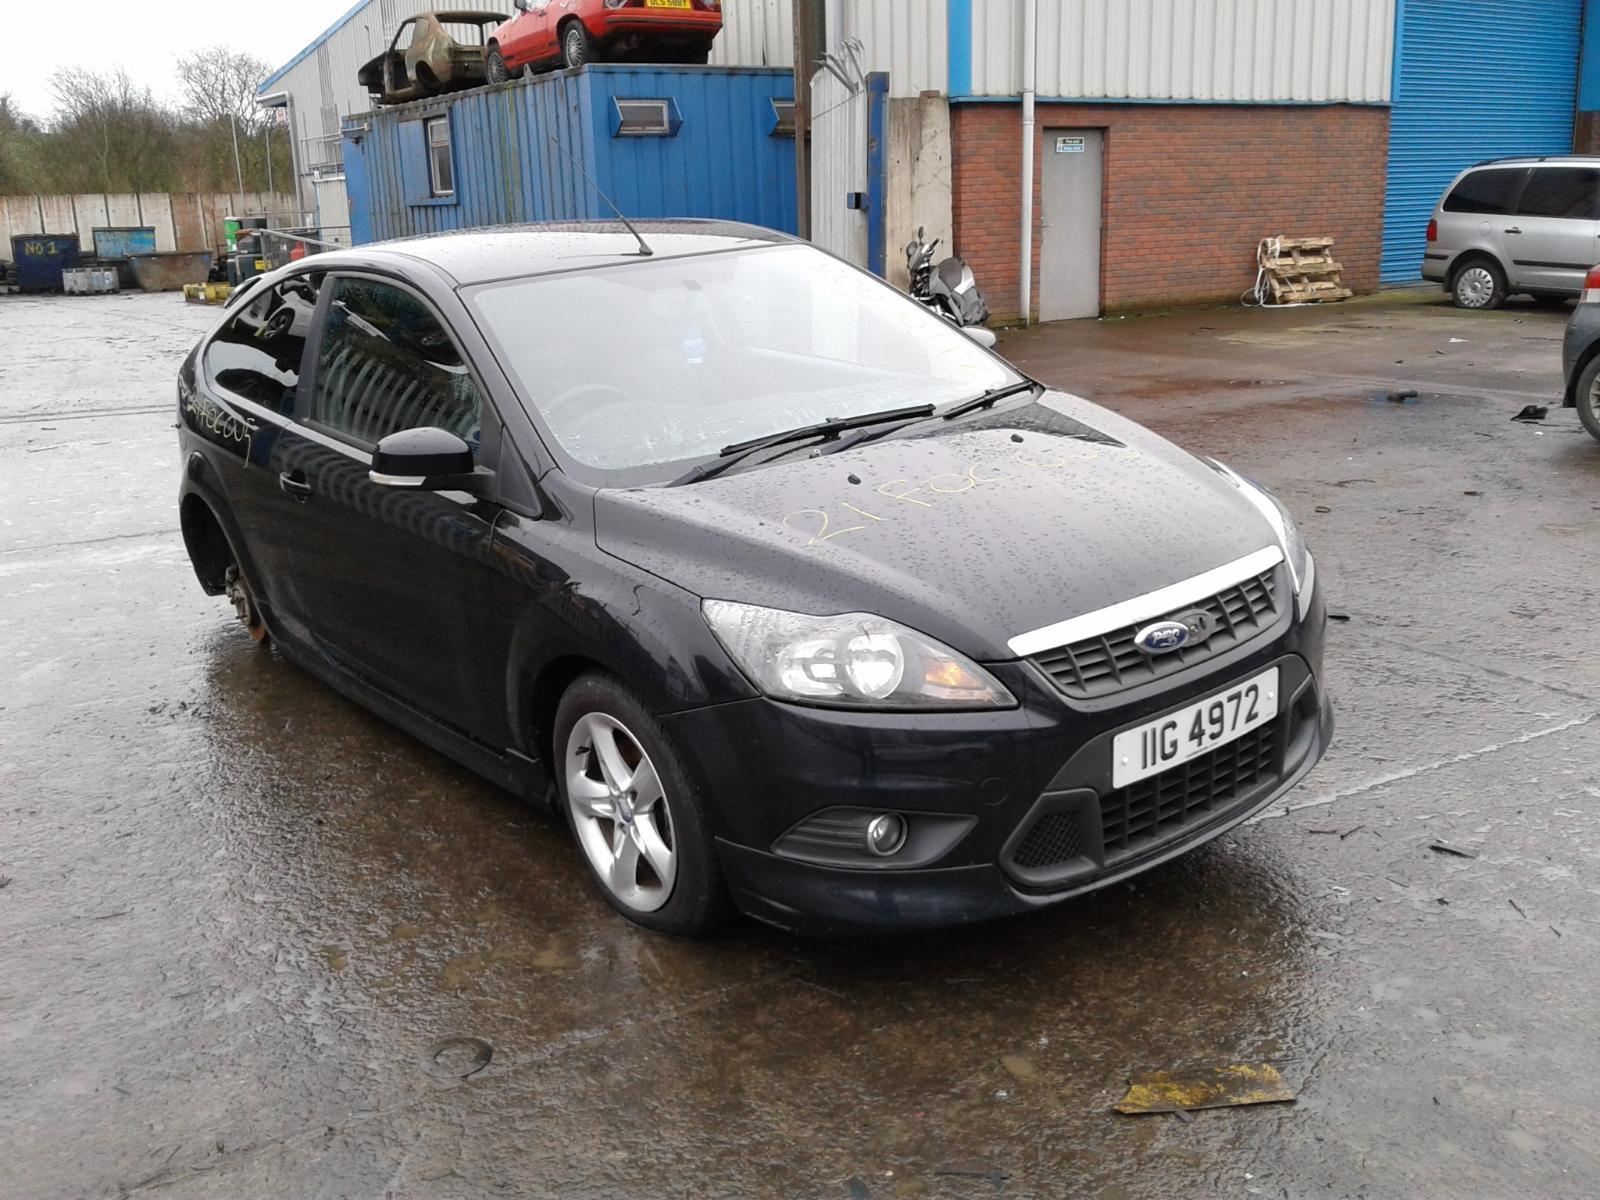 2010 FORD FOCUS Image